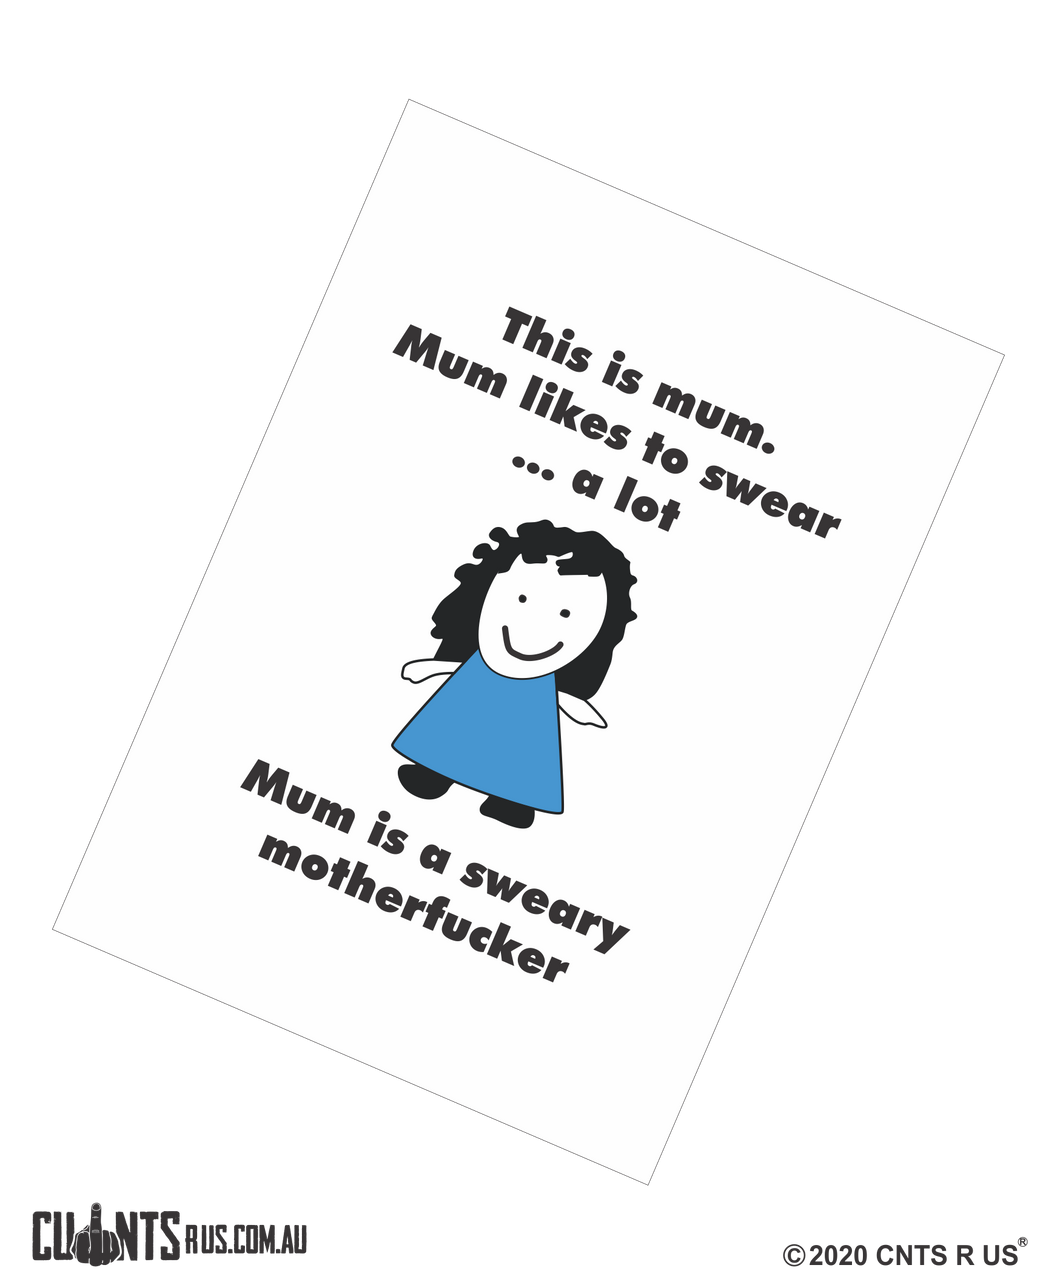 This Is Mum. Mum Likes To Swear Sweary Motherfucker Mother's Day Cotton Teatowel CRU03-03-14015